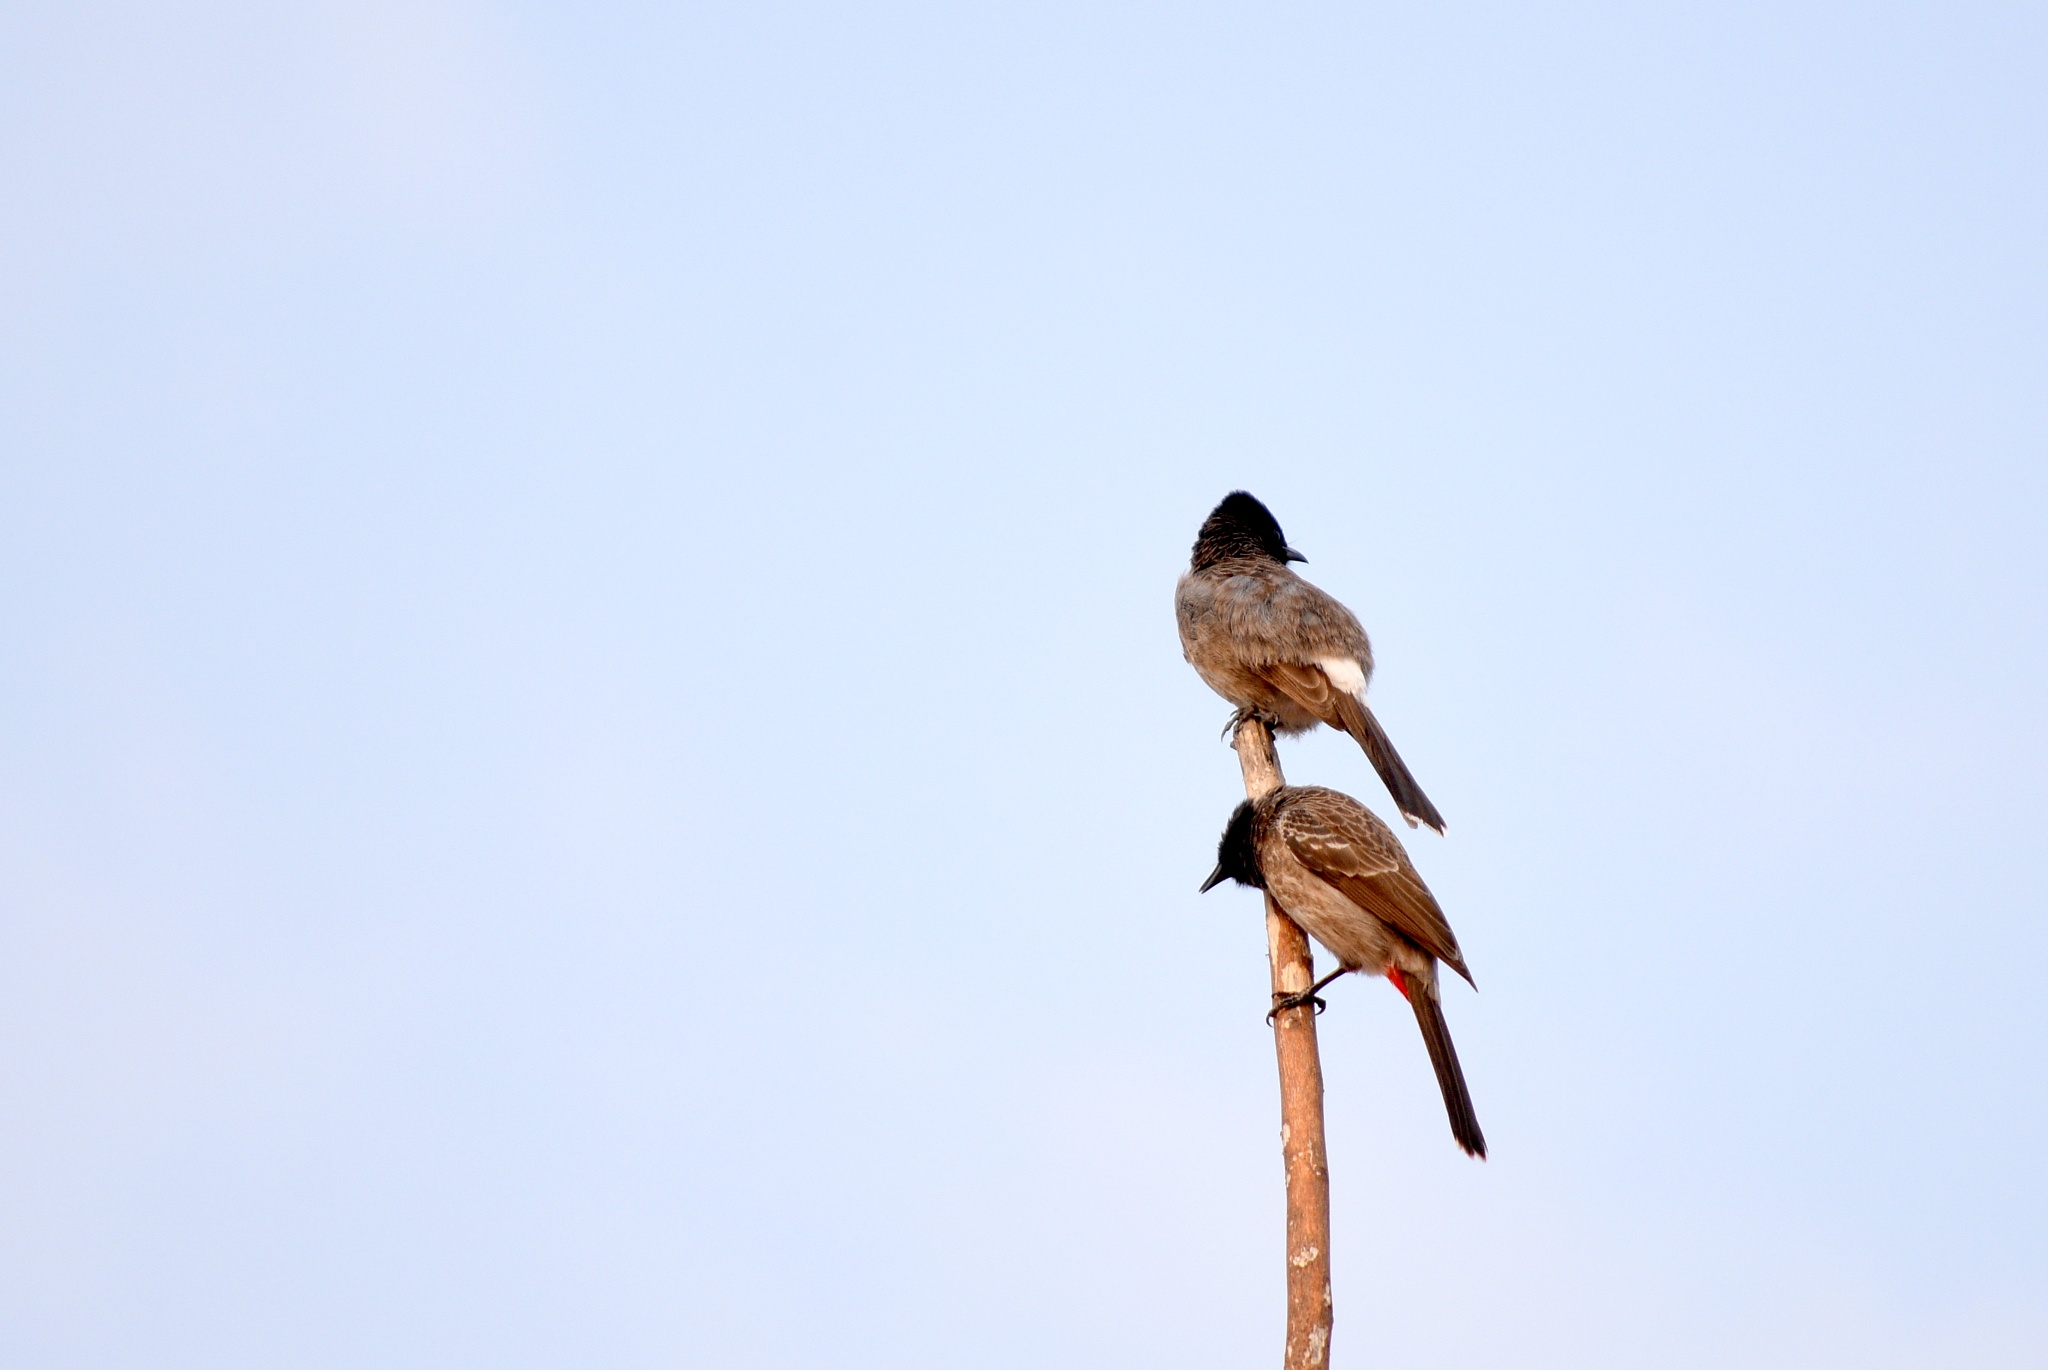 Two birds by Sidhi Swarnakar